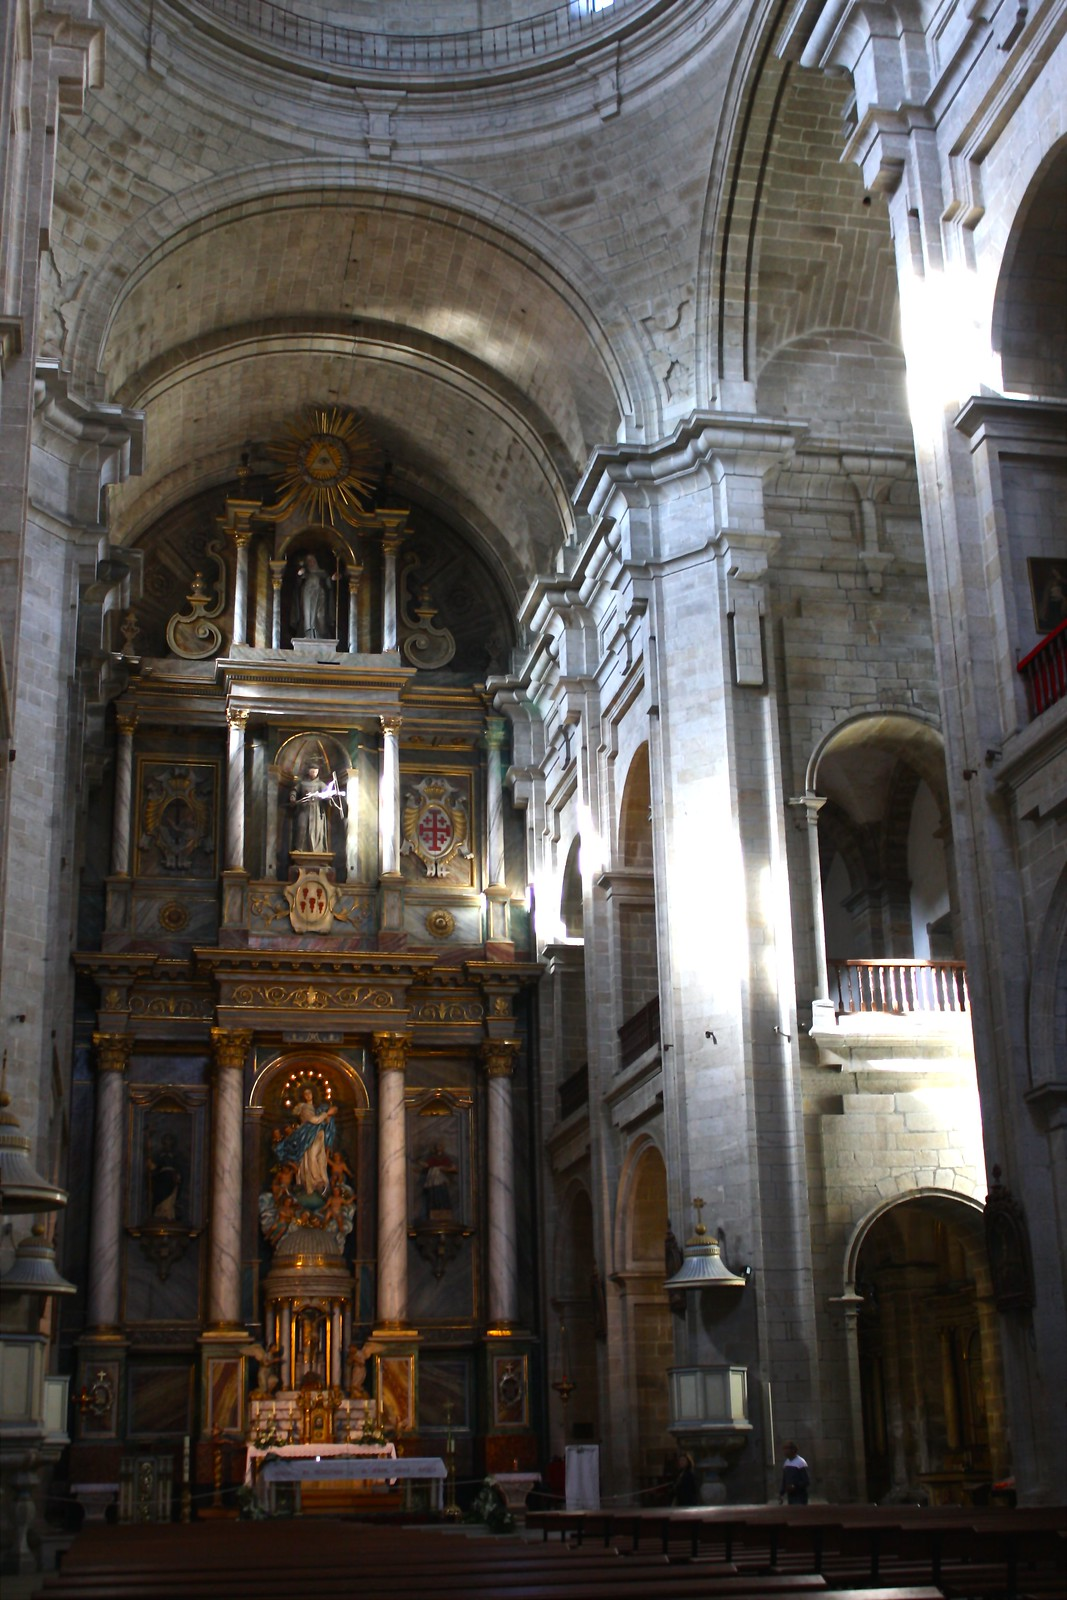 Interior nave of the Church of San Francisco, Santiago de Compostela, Spain